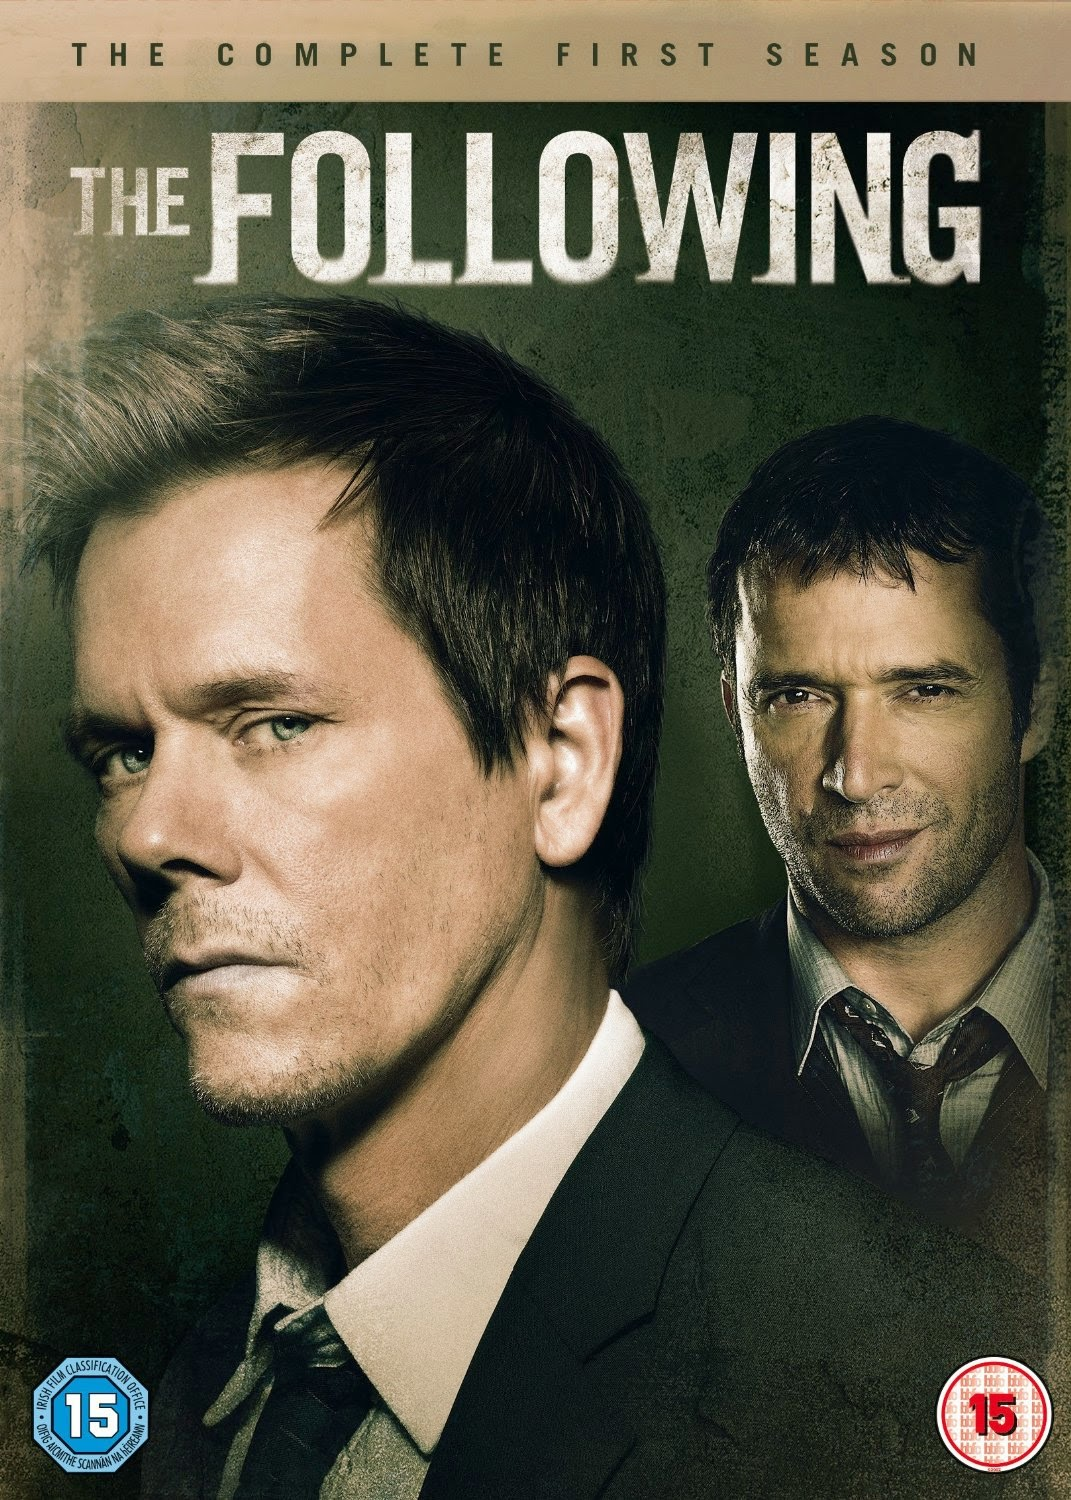 The Following – Todas as Temporadas Dublado / Legendado (2013)